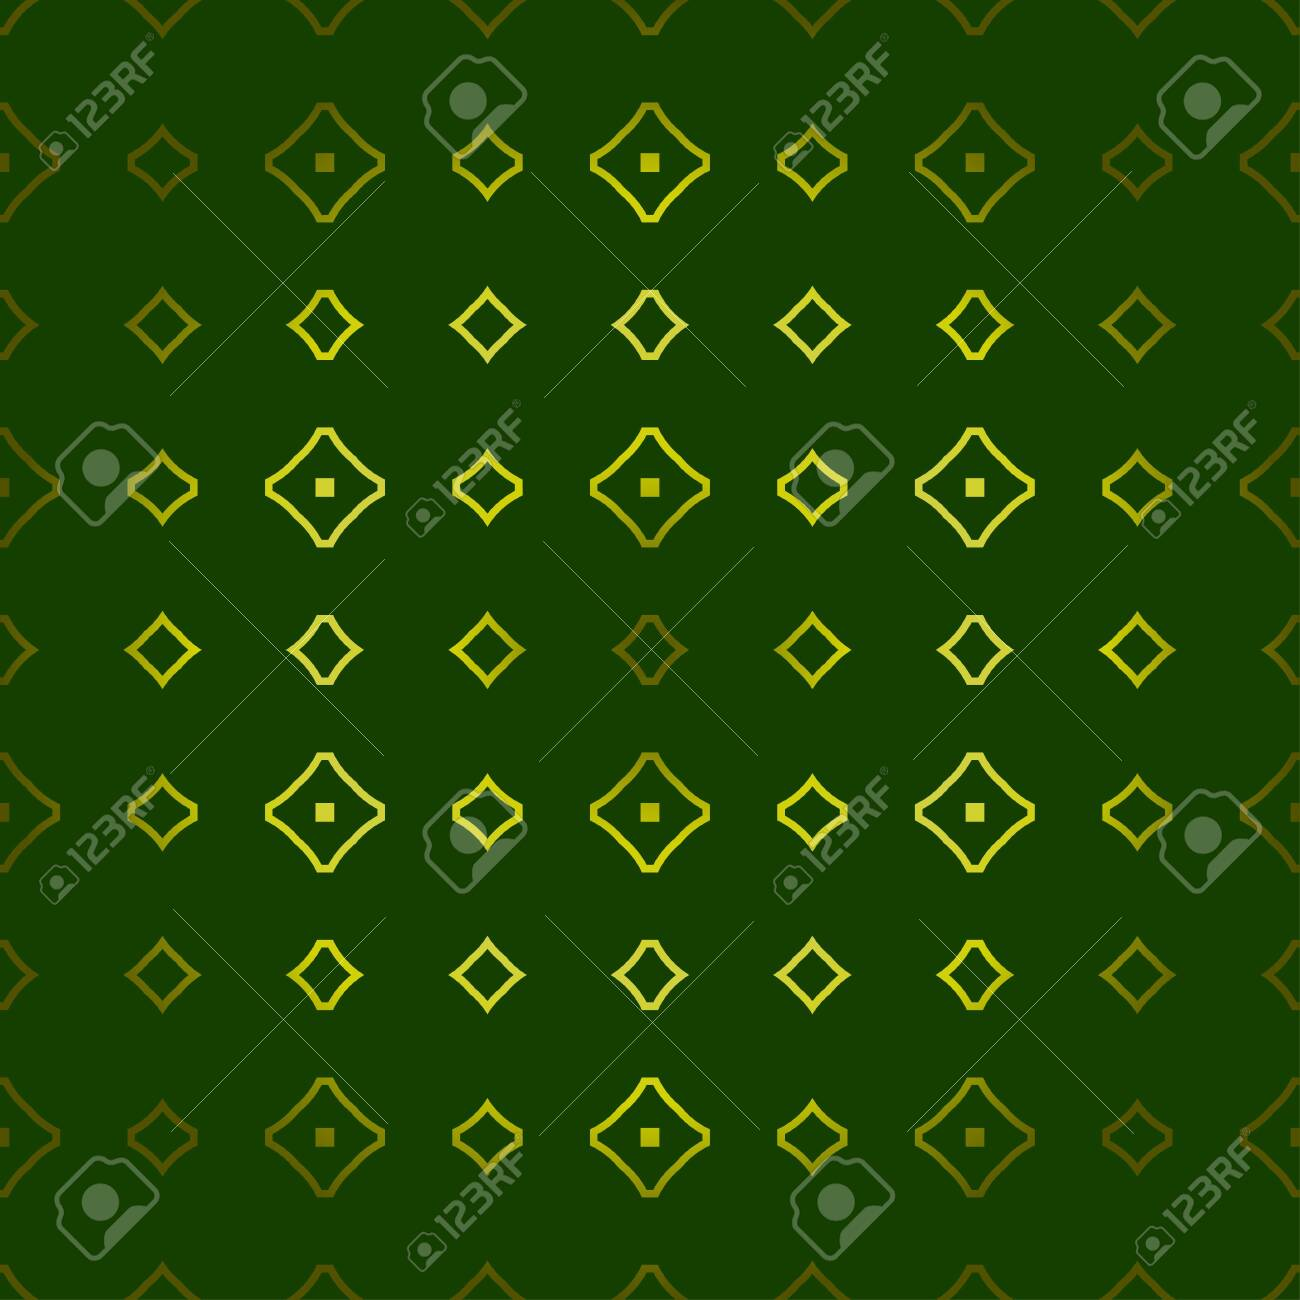 Vector Seamless Pattern With Abstract Geometric Style Repeating